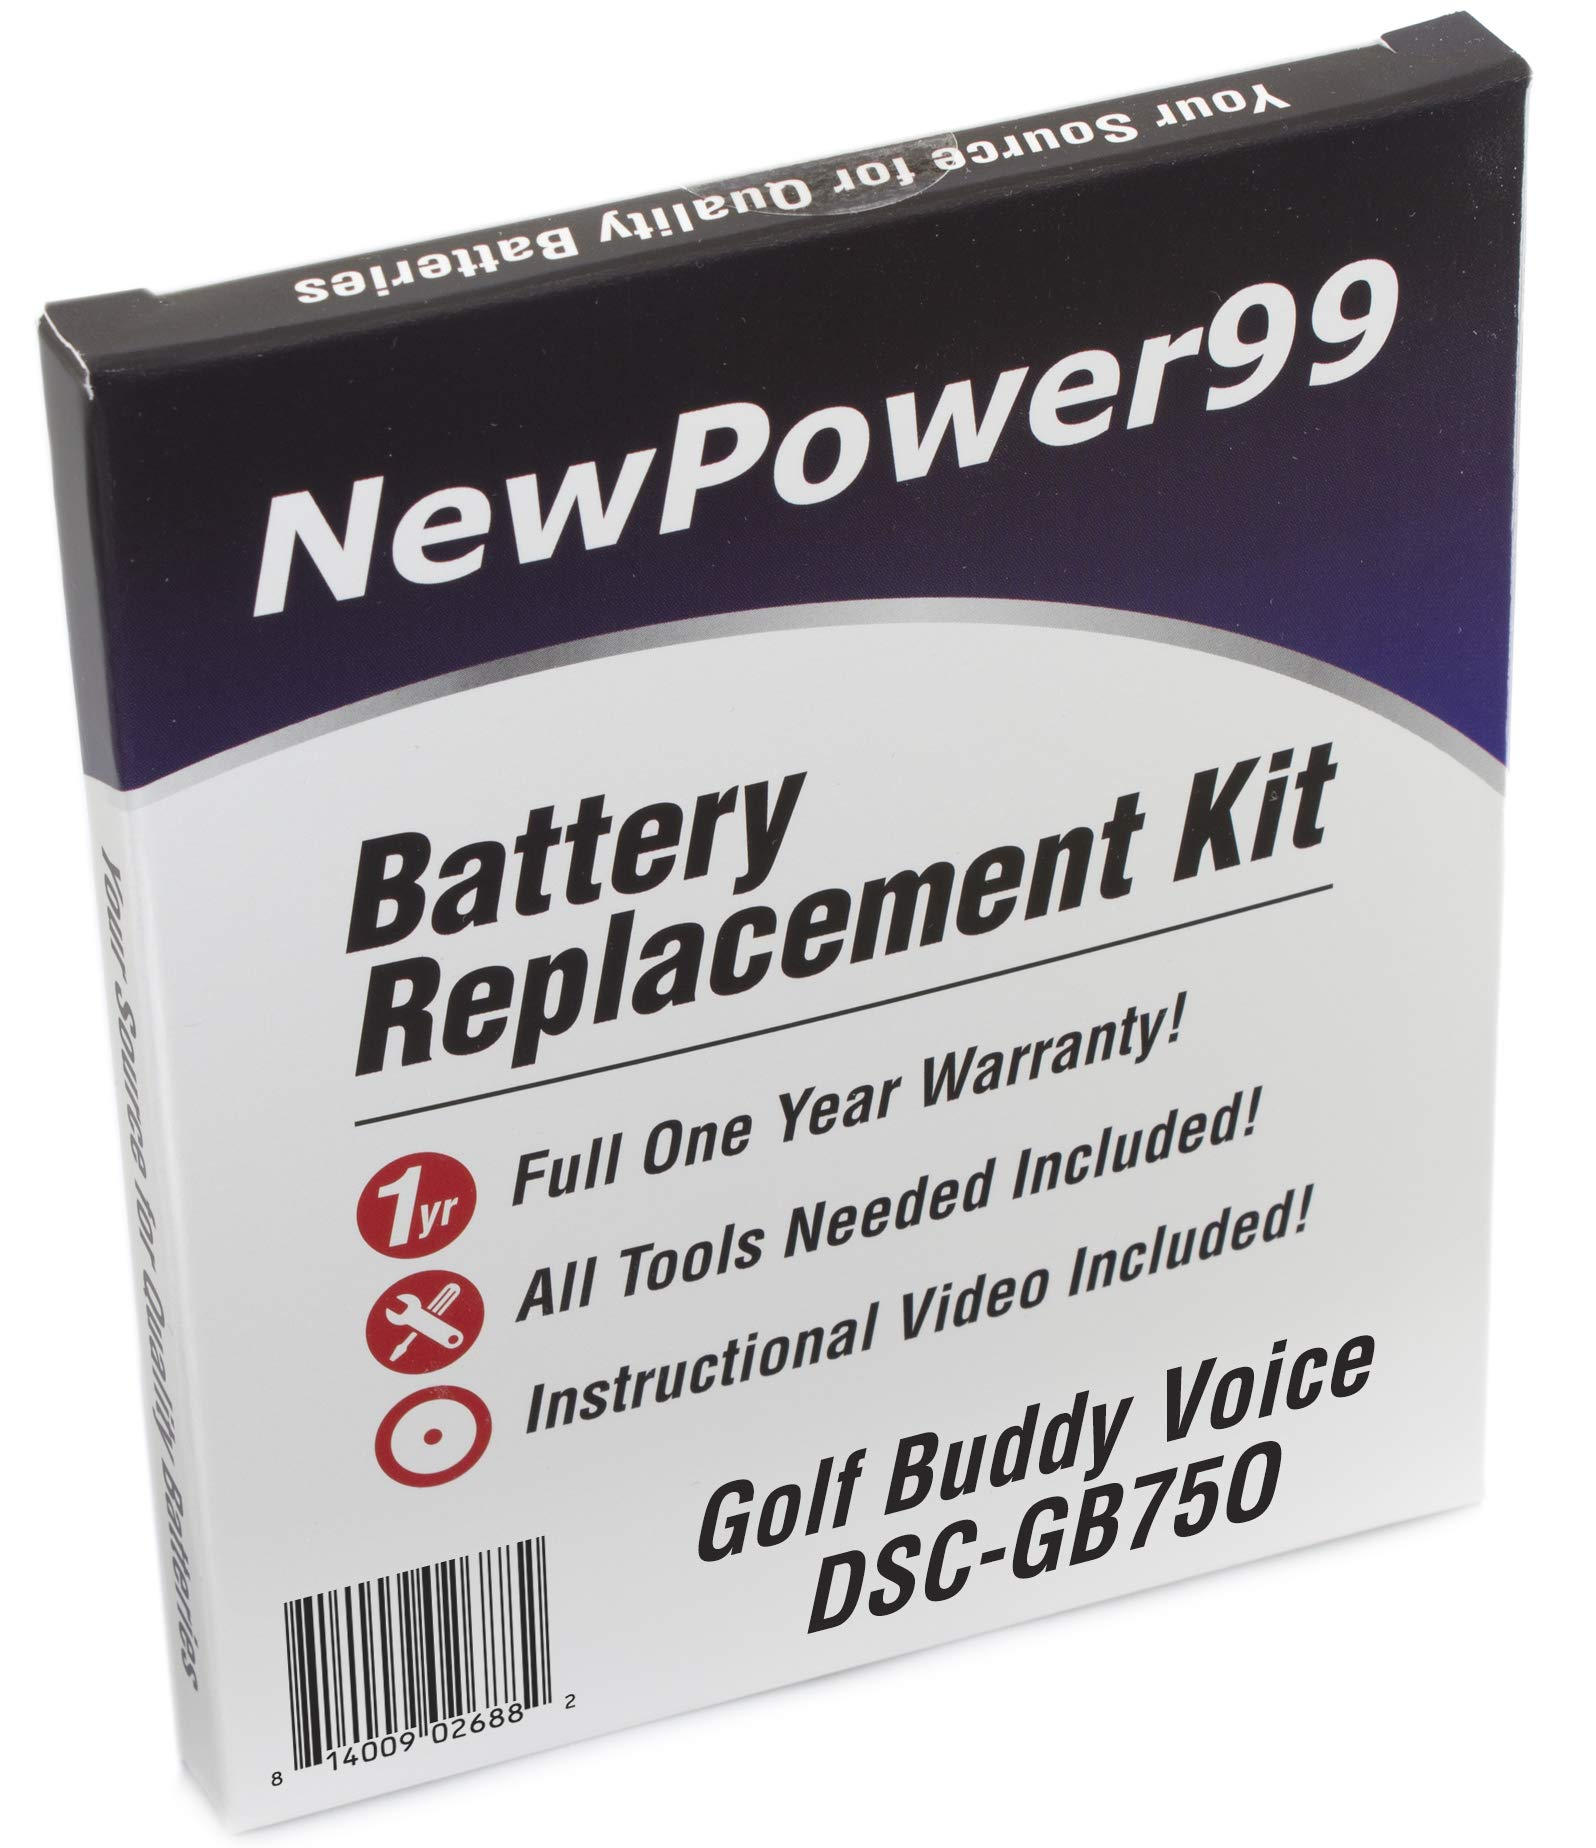 NewPower99 Battery Replacement Kit for GolfBuddy Voice DSC-GB750 with Installation Video, Tools, and Extended Life Battery.